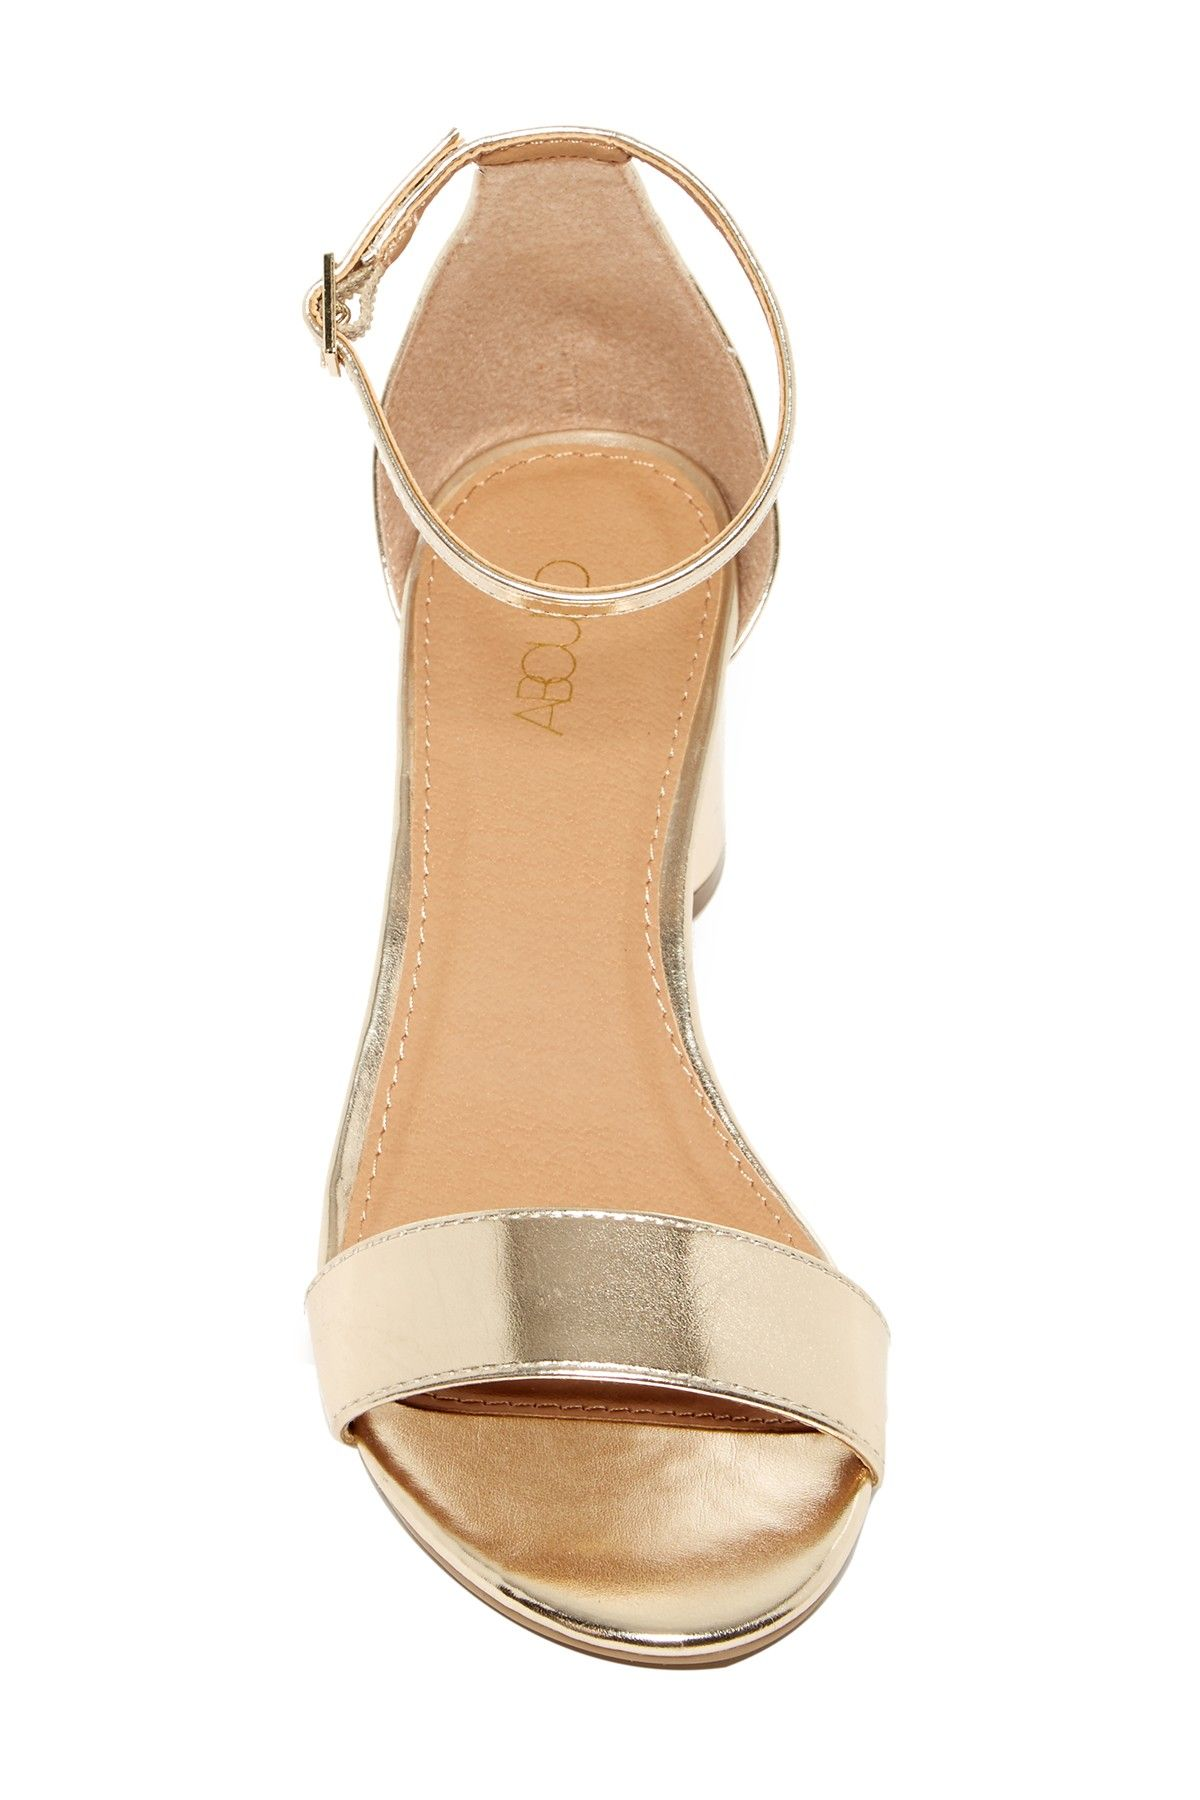 36c3e4dc595 Emina Rounded Block Heel Sandal - Wide Width Available